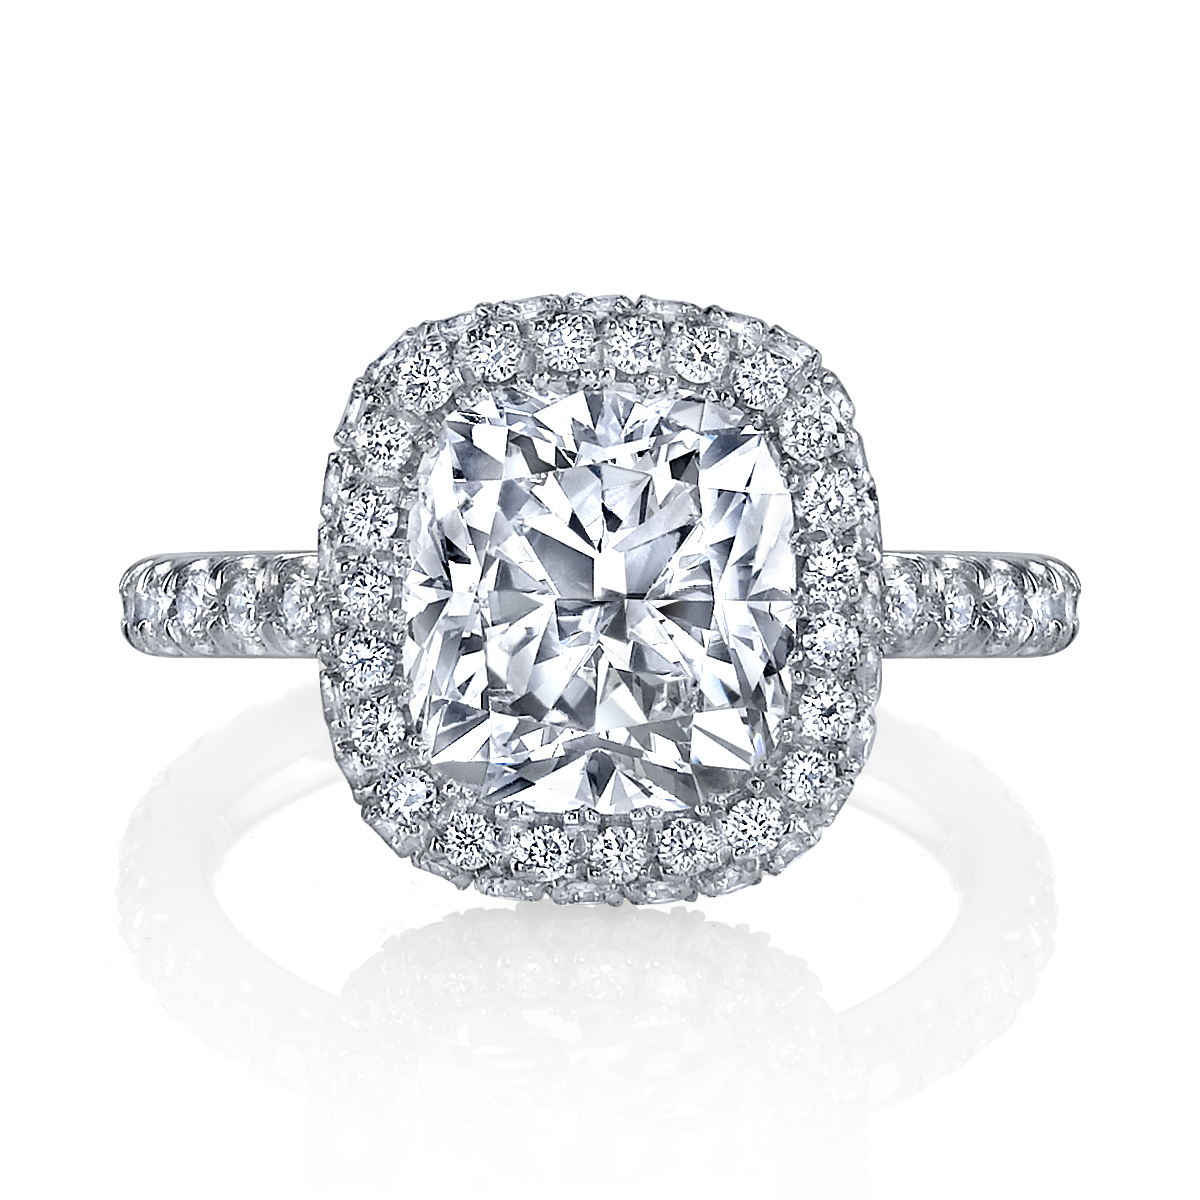 Jewelry news network jean dousset finds niche with custom for Diamond wedding ring images